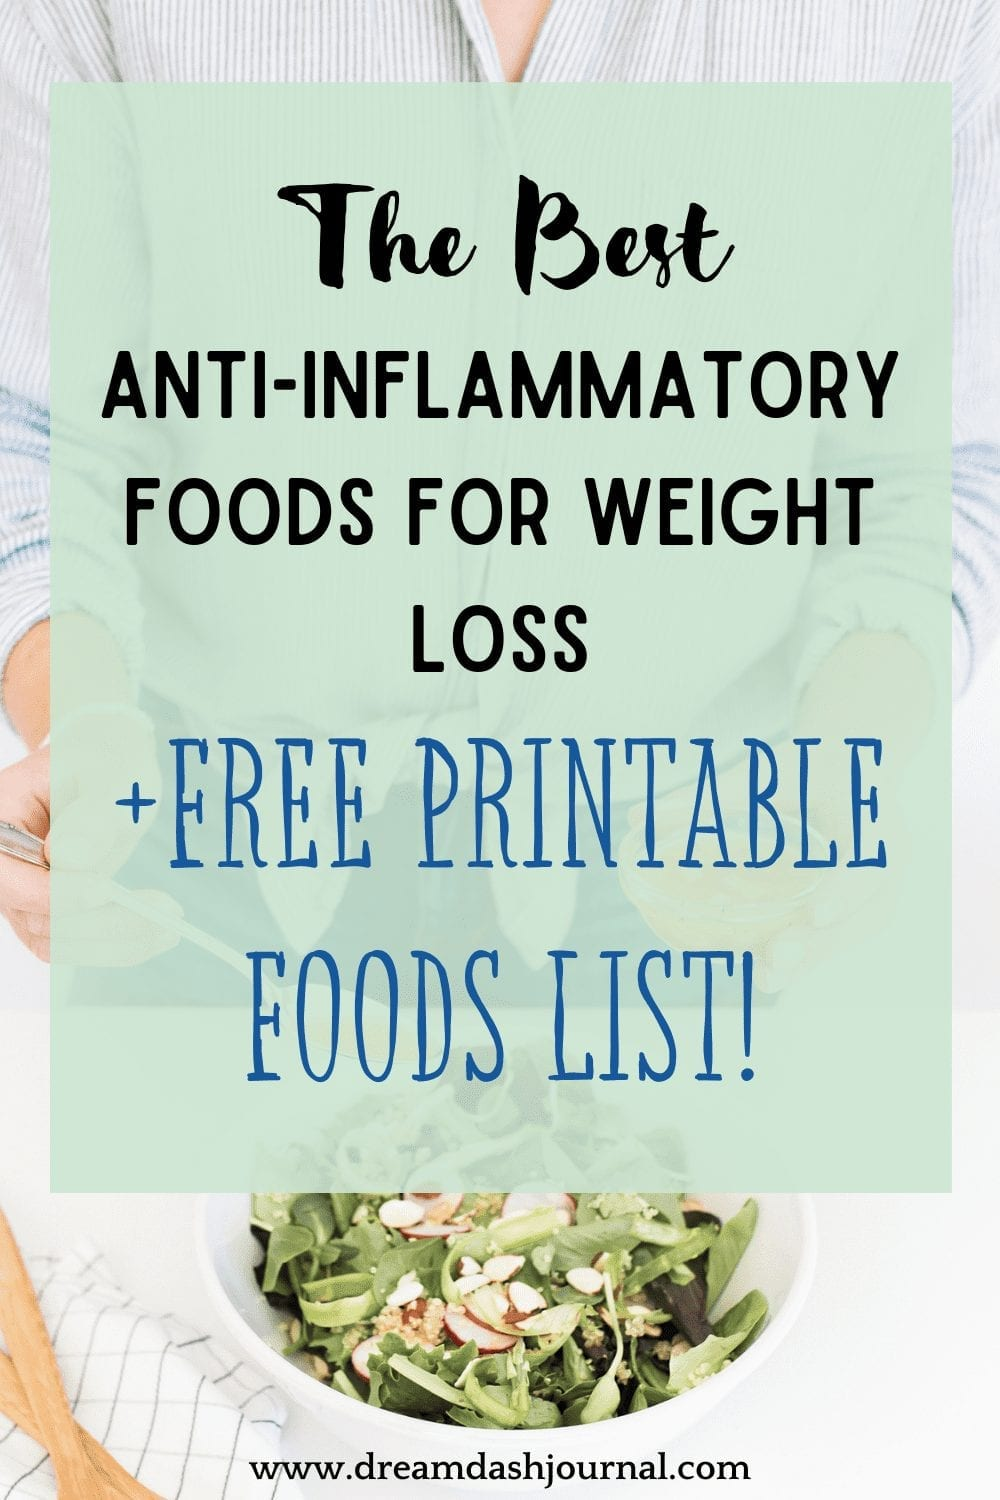 Anti-Inflammatory Foods List for Weight Loss Plus Free PDF Printable